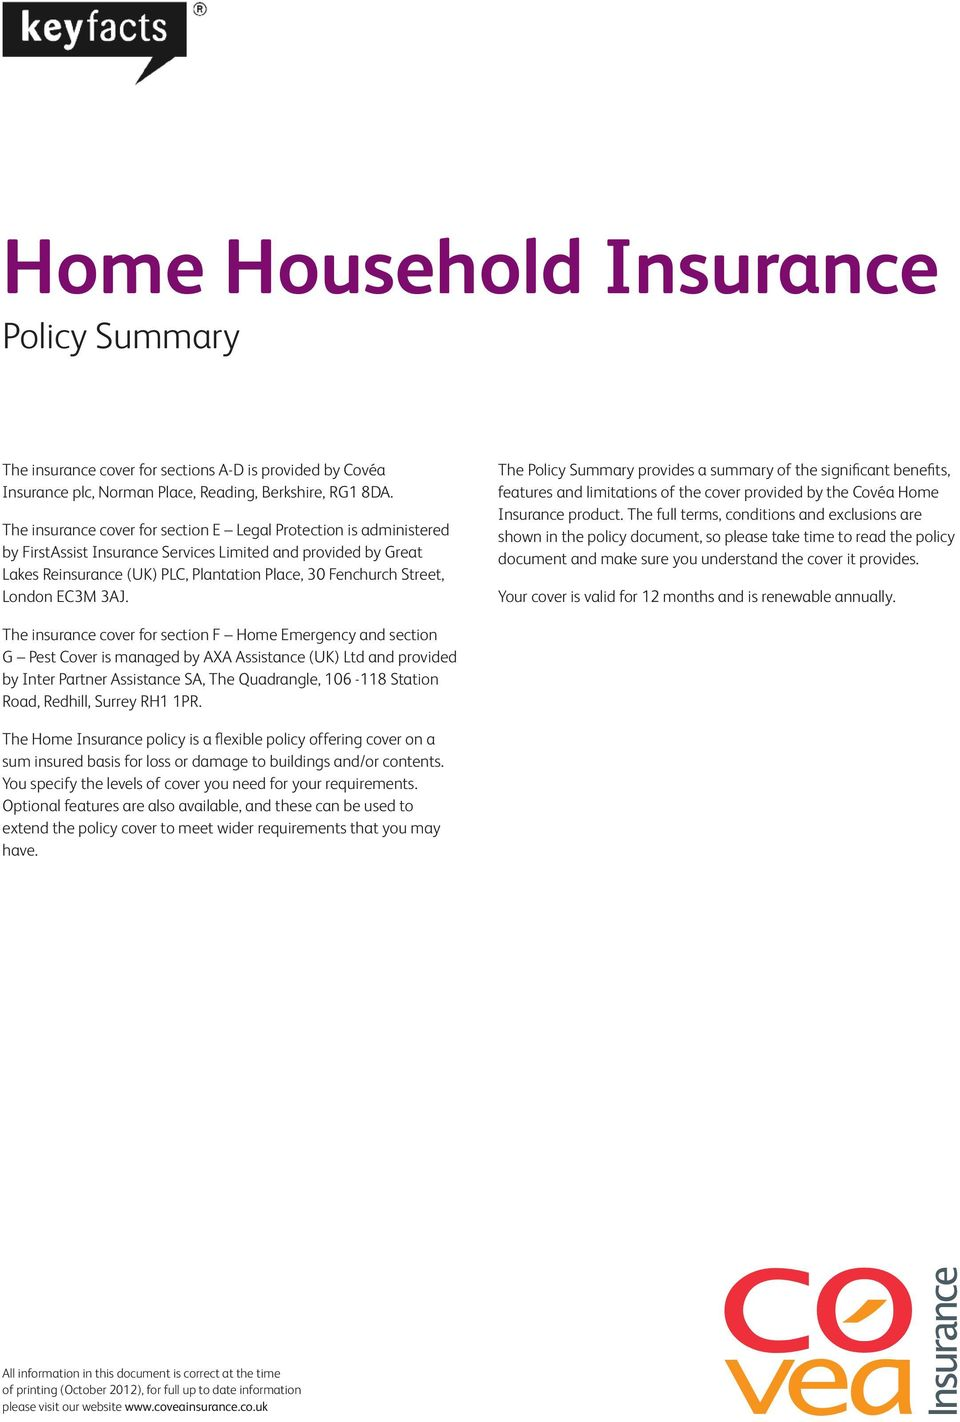 London EC3M 3AJ. The Policy Summary provides a summary of the significant benefits, features and limitations of the cover provided by the Covéa Home Insurance product.